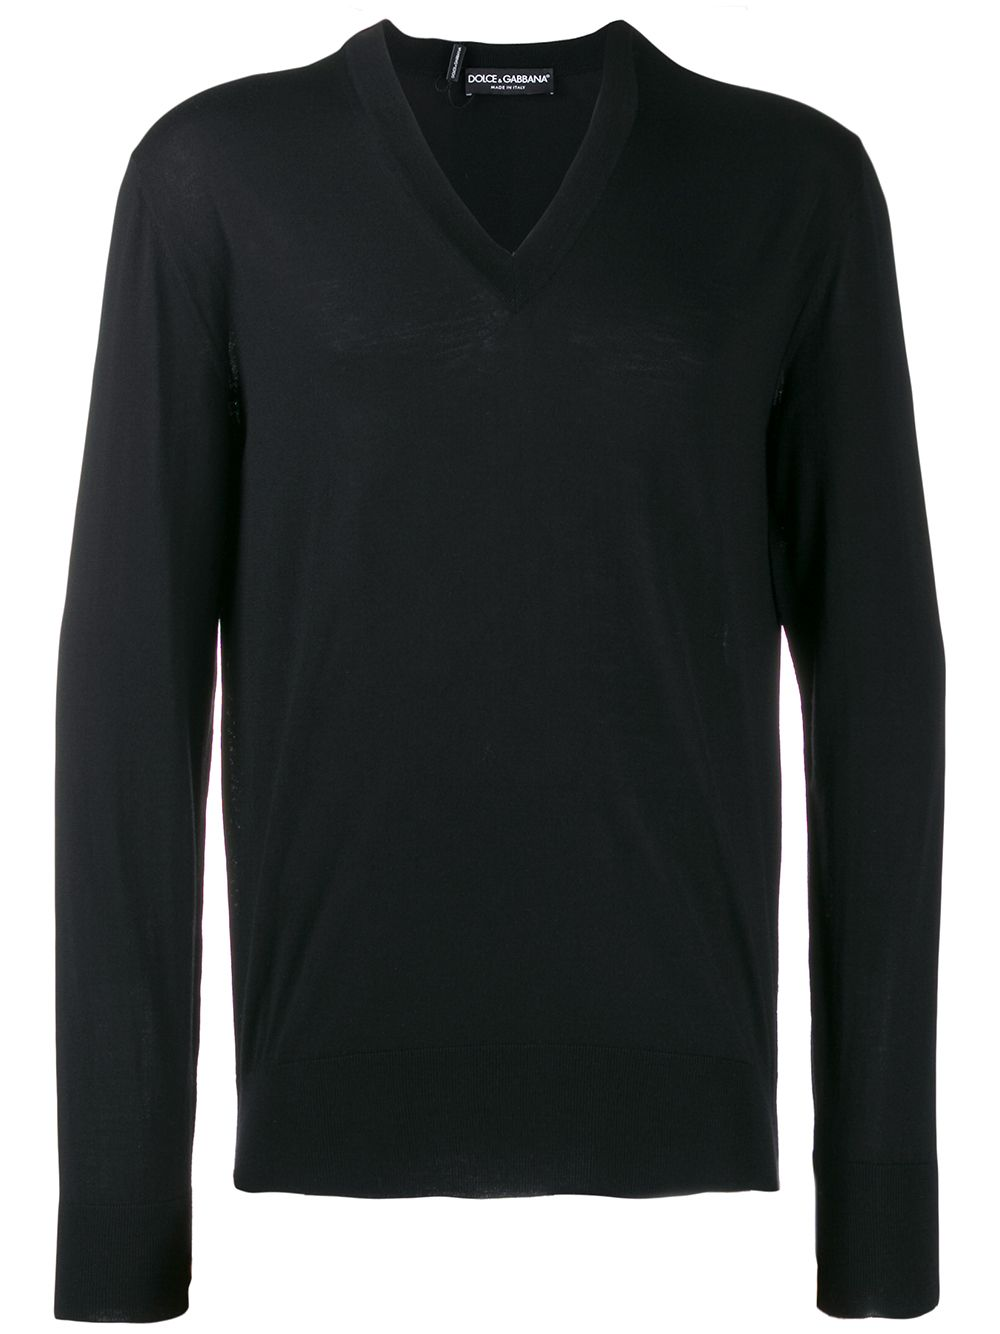 Picture of Dolce & Gabbana | Vneck Sweater